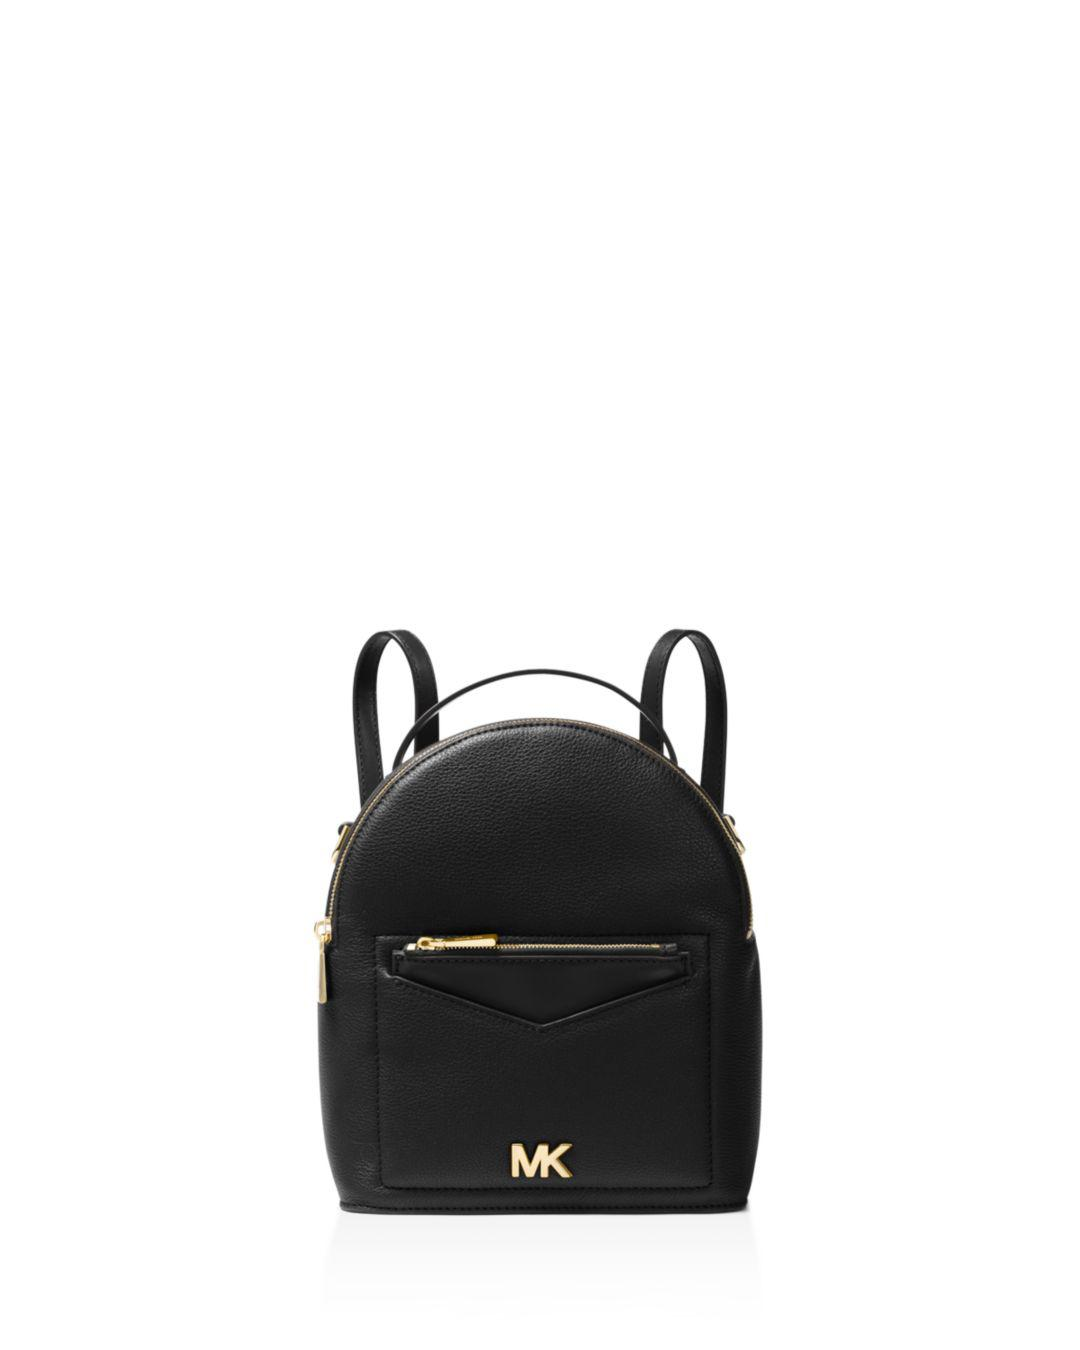 42c52f5118f1 MICHAEL Michael Kors. Women's Black Jessa Small Convertible Leather Backpack